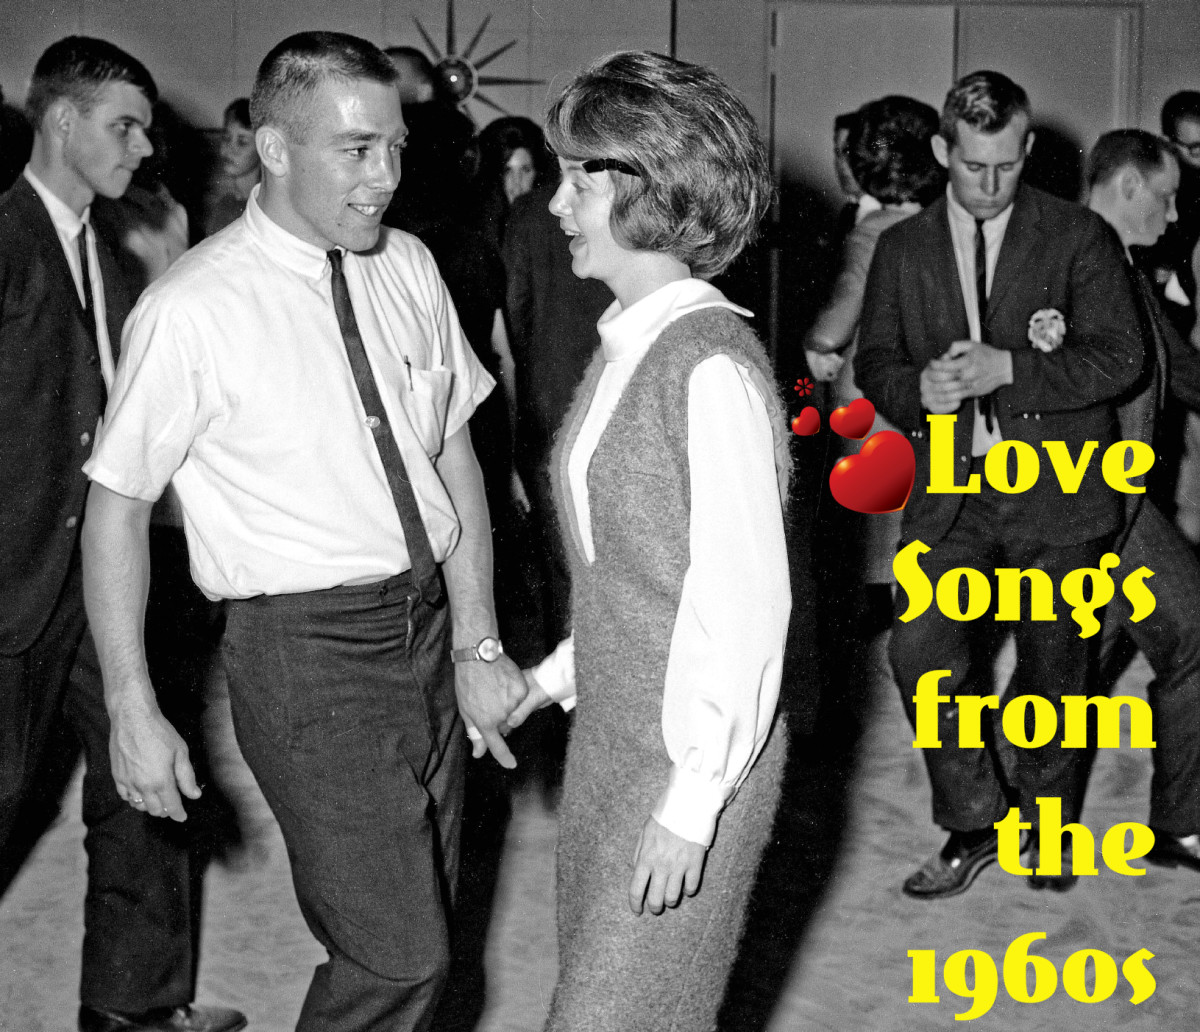 115 Love Songs From the 1960s